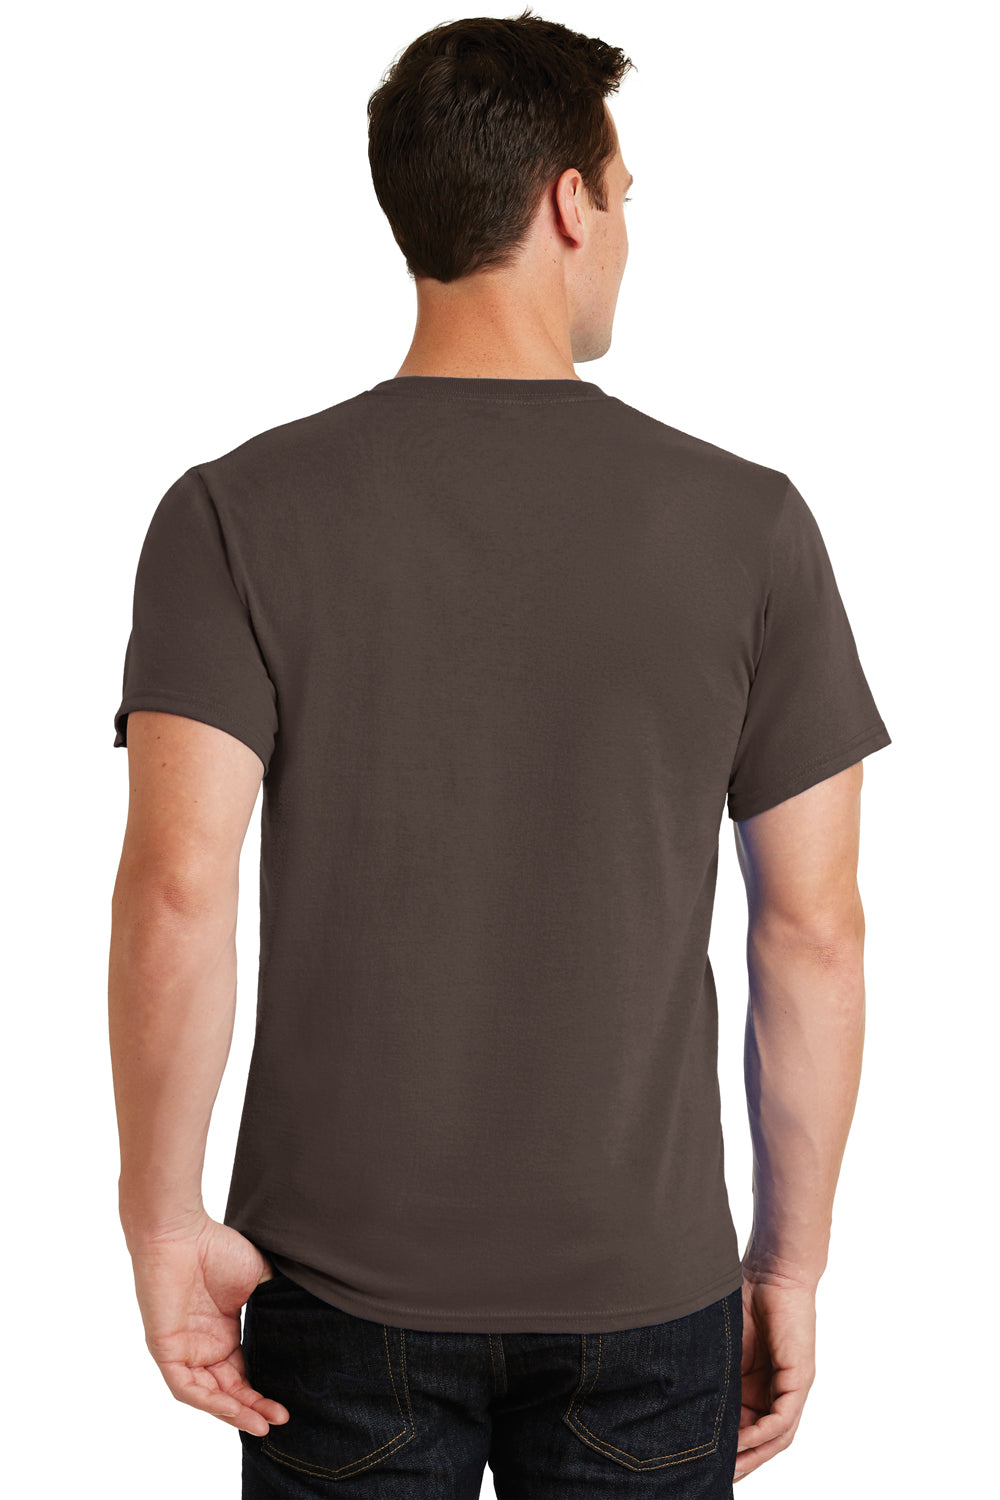 Port & Company PC61 Mens Essential Short Sleeve Crewneck T-Shirt Brown Back